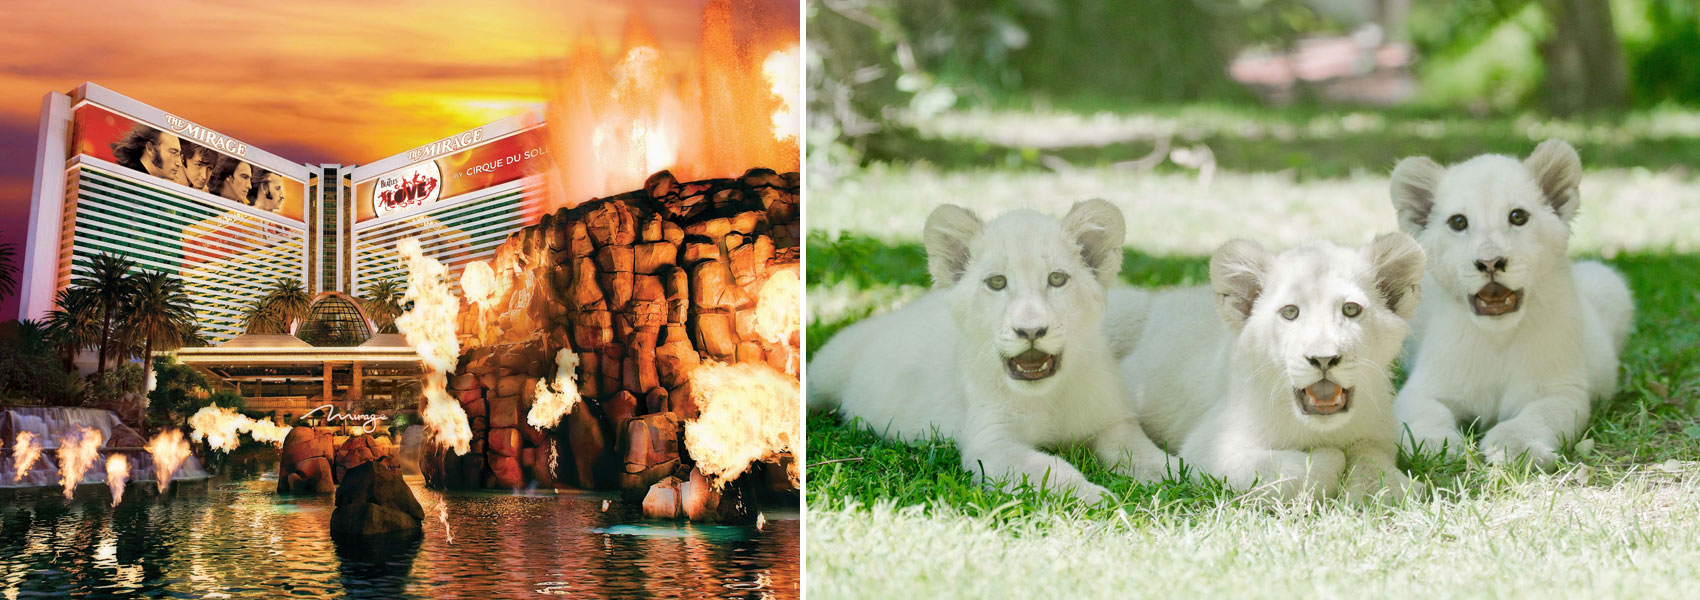 The Mirage exterior and white lion cubs